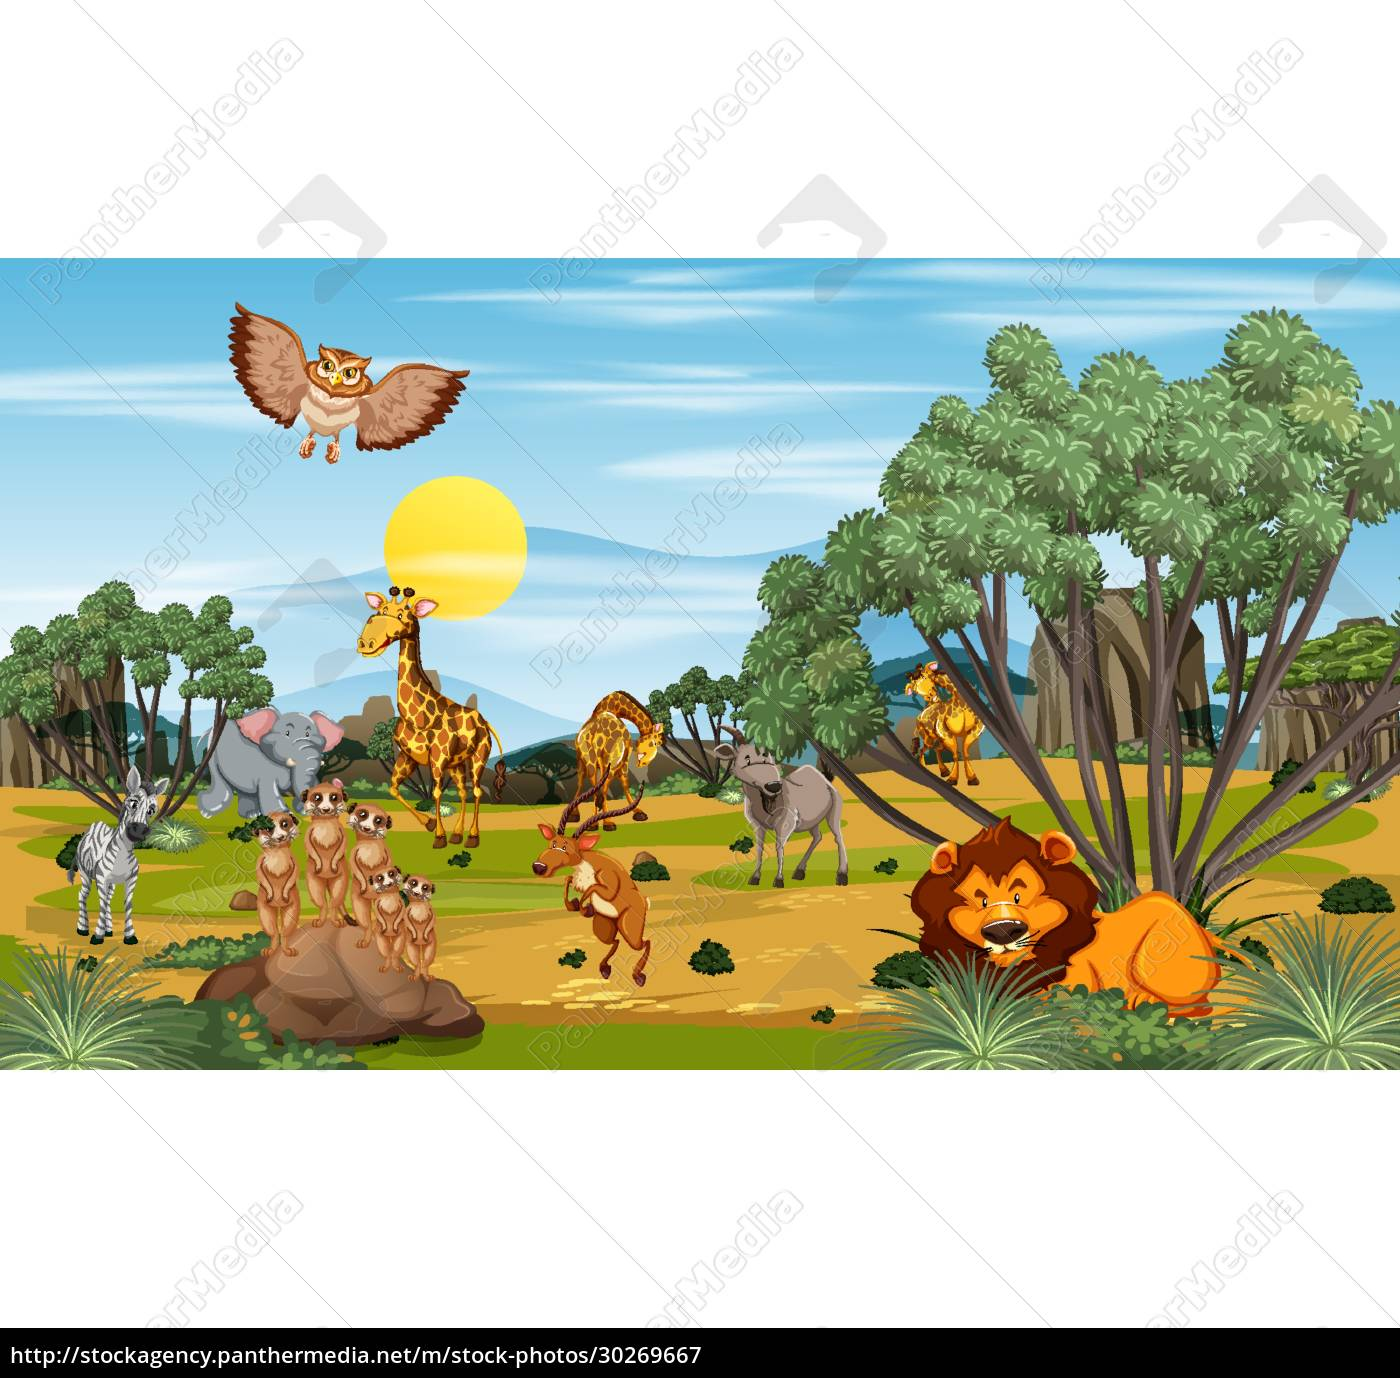 many, different, animals, in, the, forest - 30269667